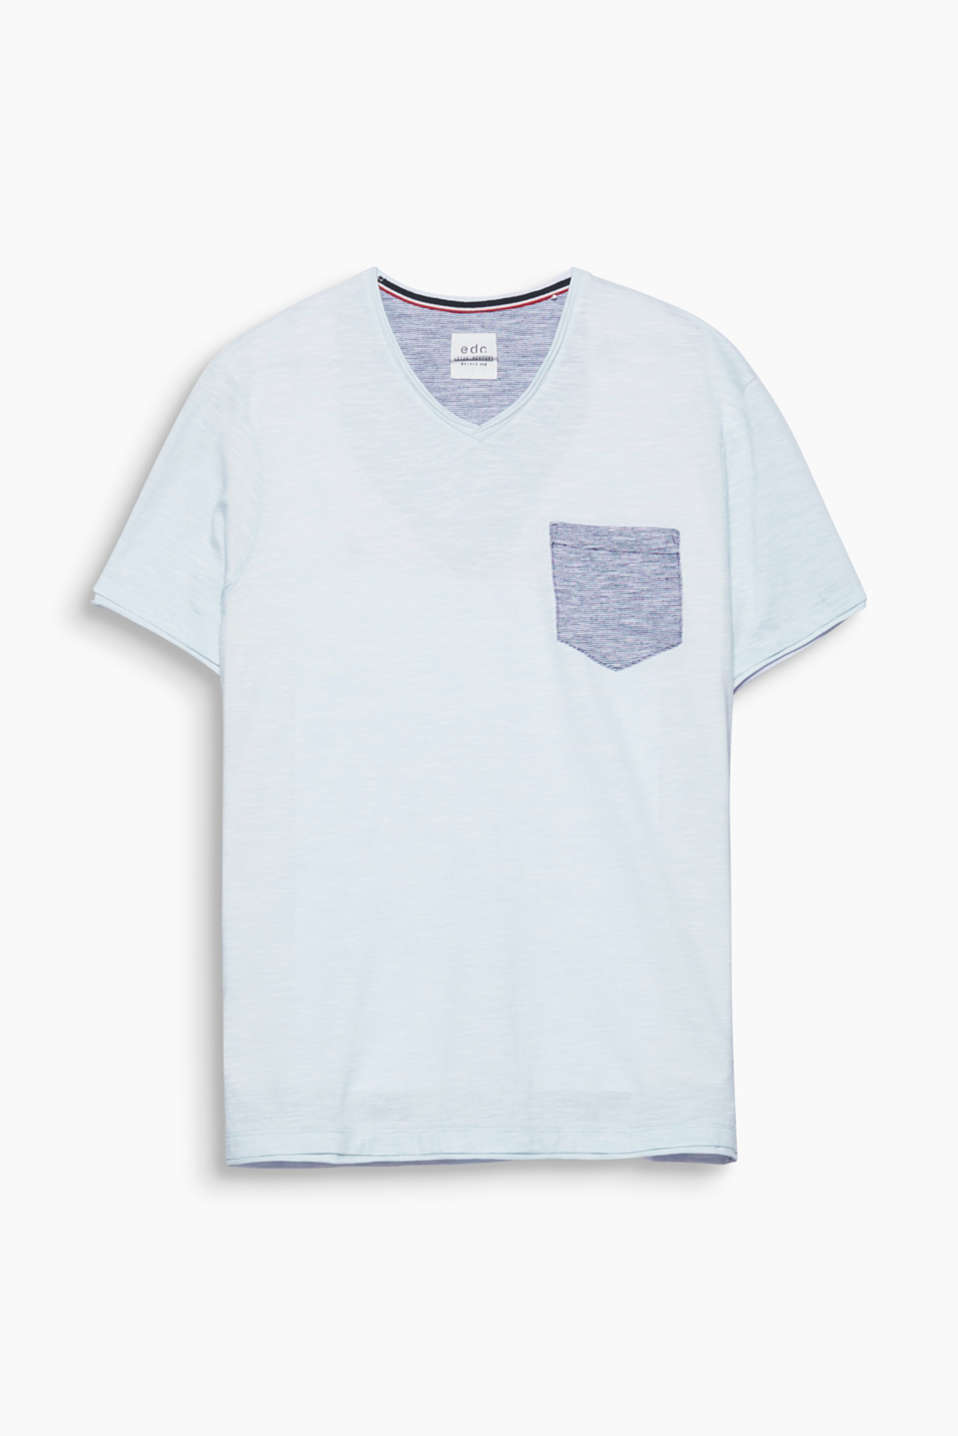 This V-neck T-shirt with a breast pocket is a cool fashion essential.